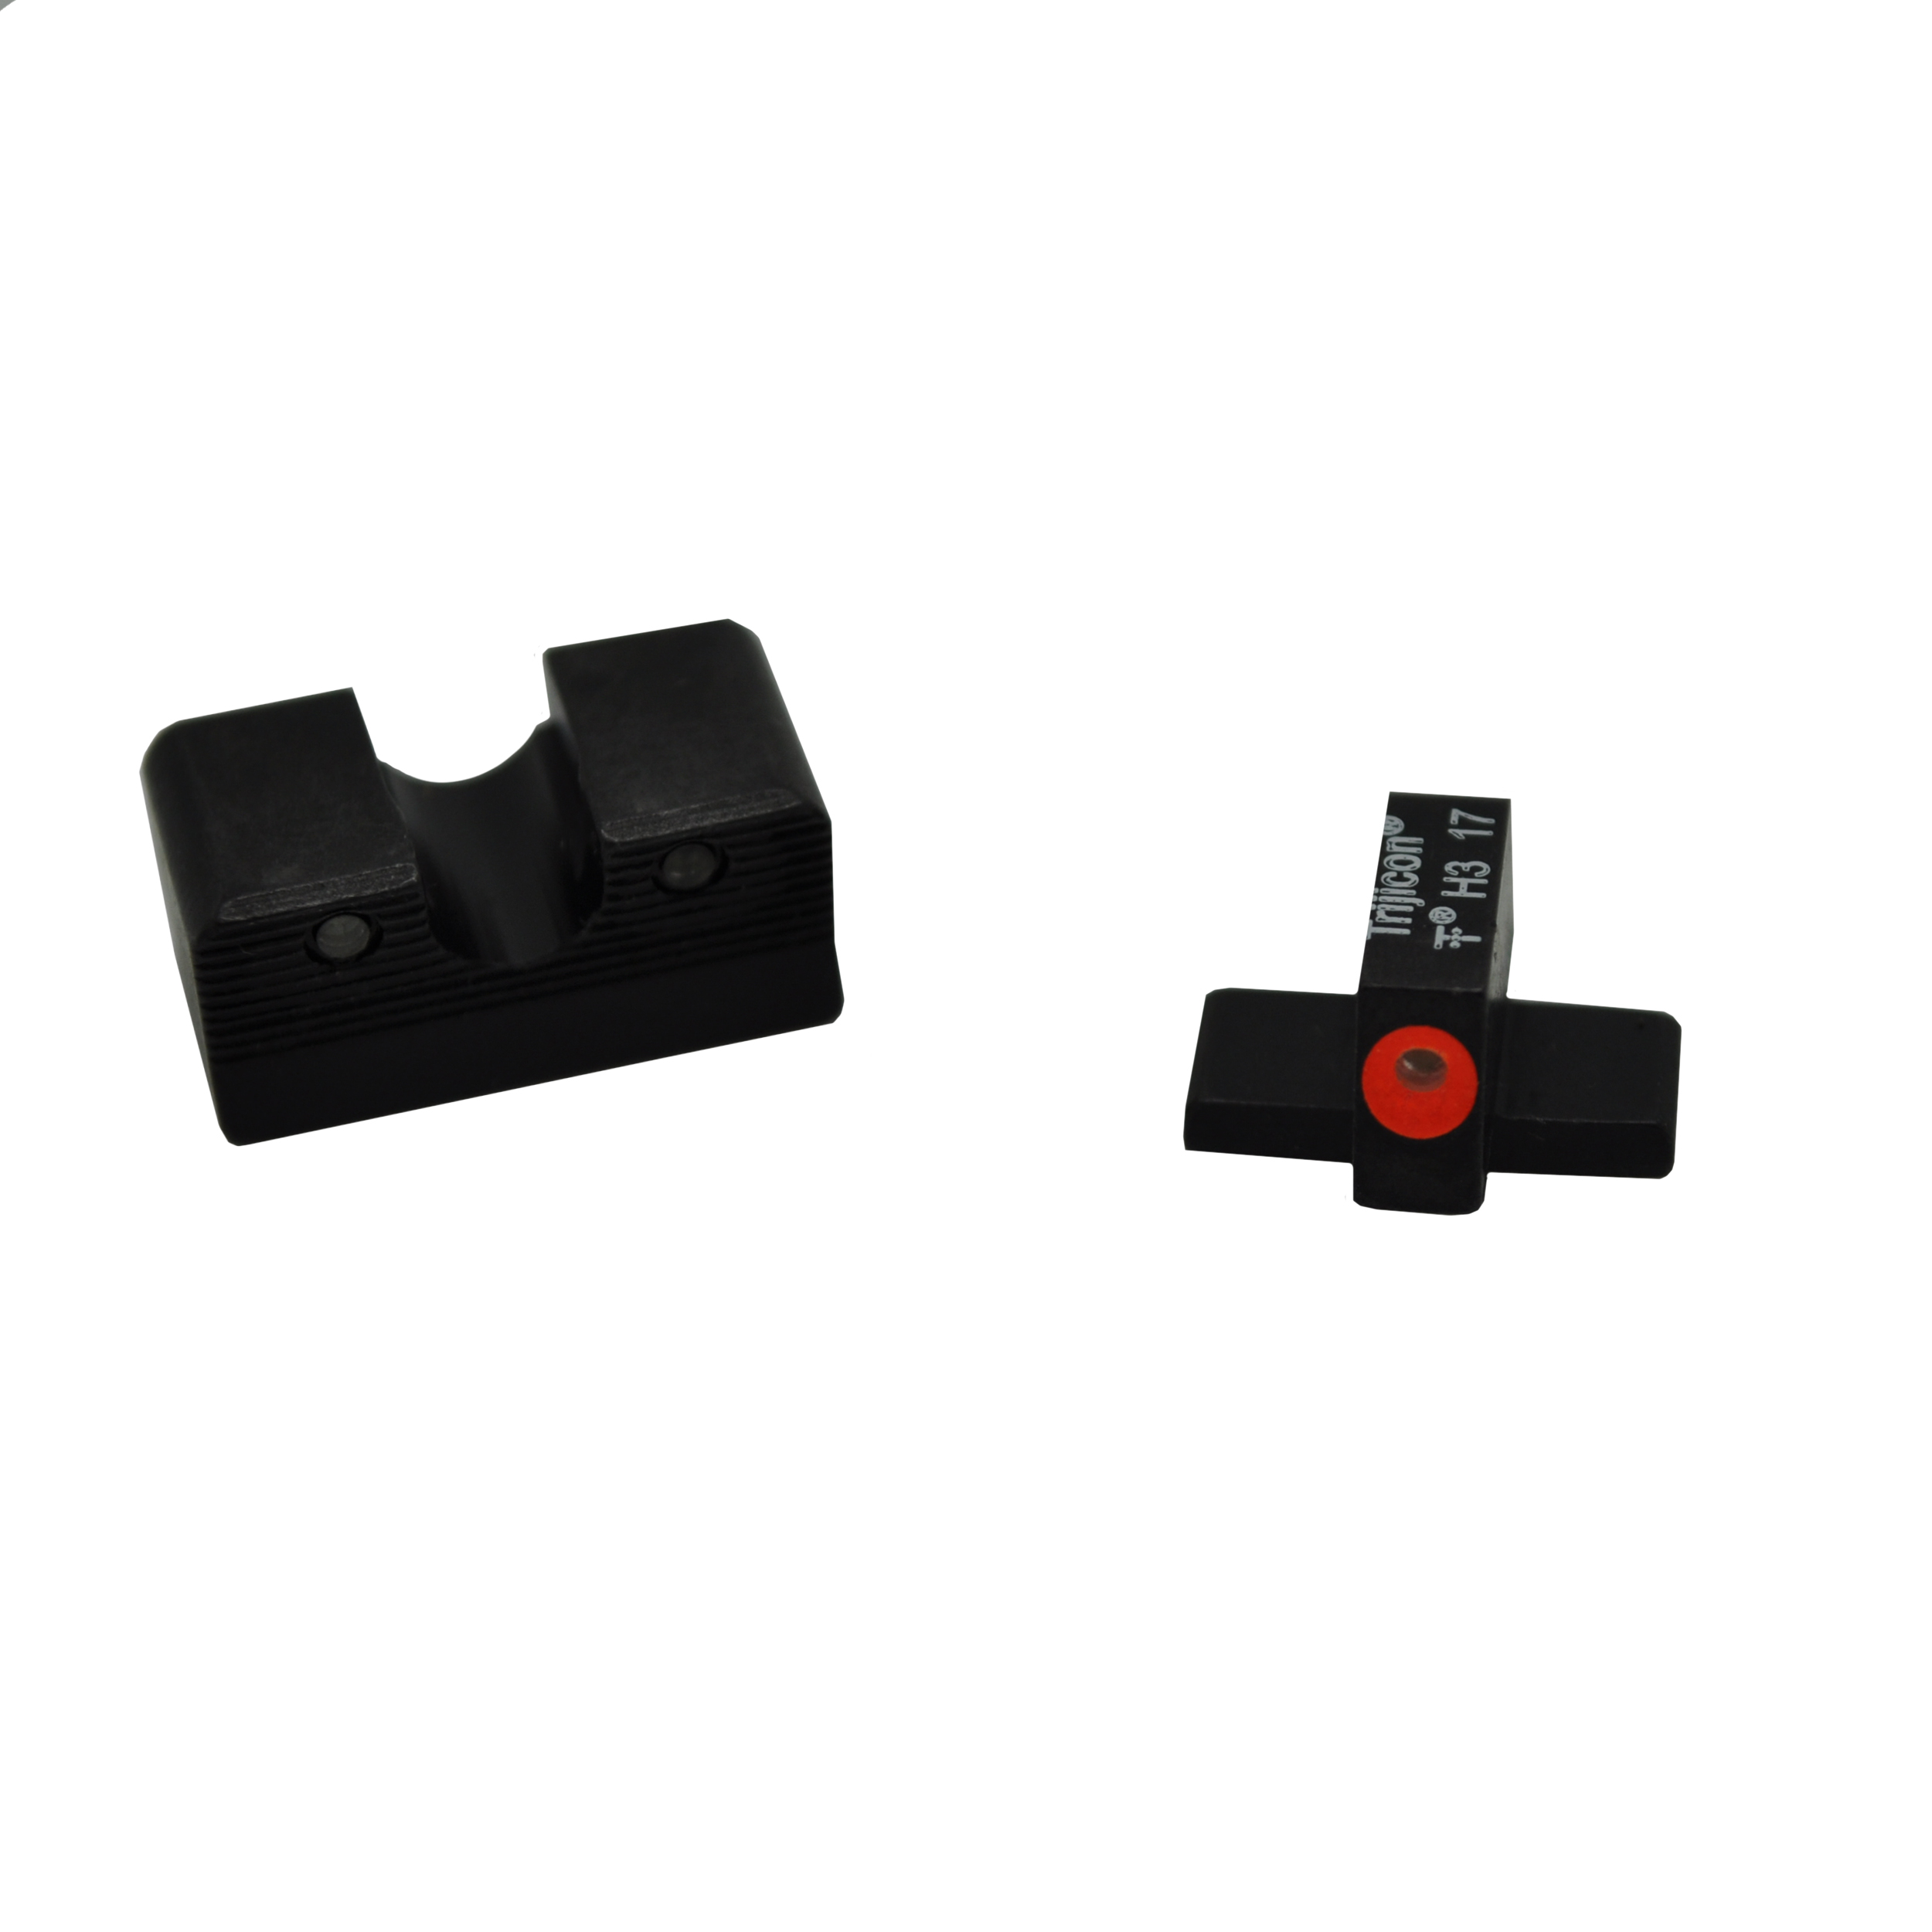 Click here to buy Trijicon HD XR Night Sight Set Sig Sauer Calibrated for 9mm and .357 Sig, Orange Front Outline Lamp by Trijicon.